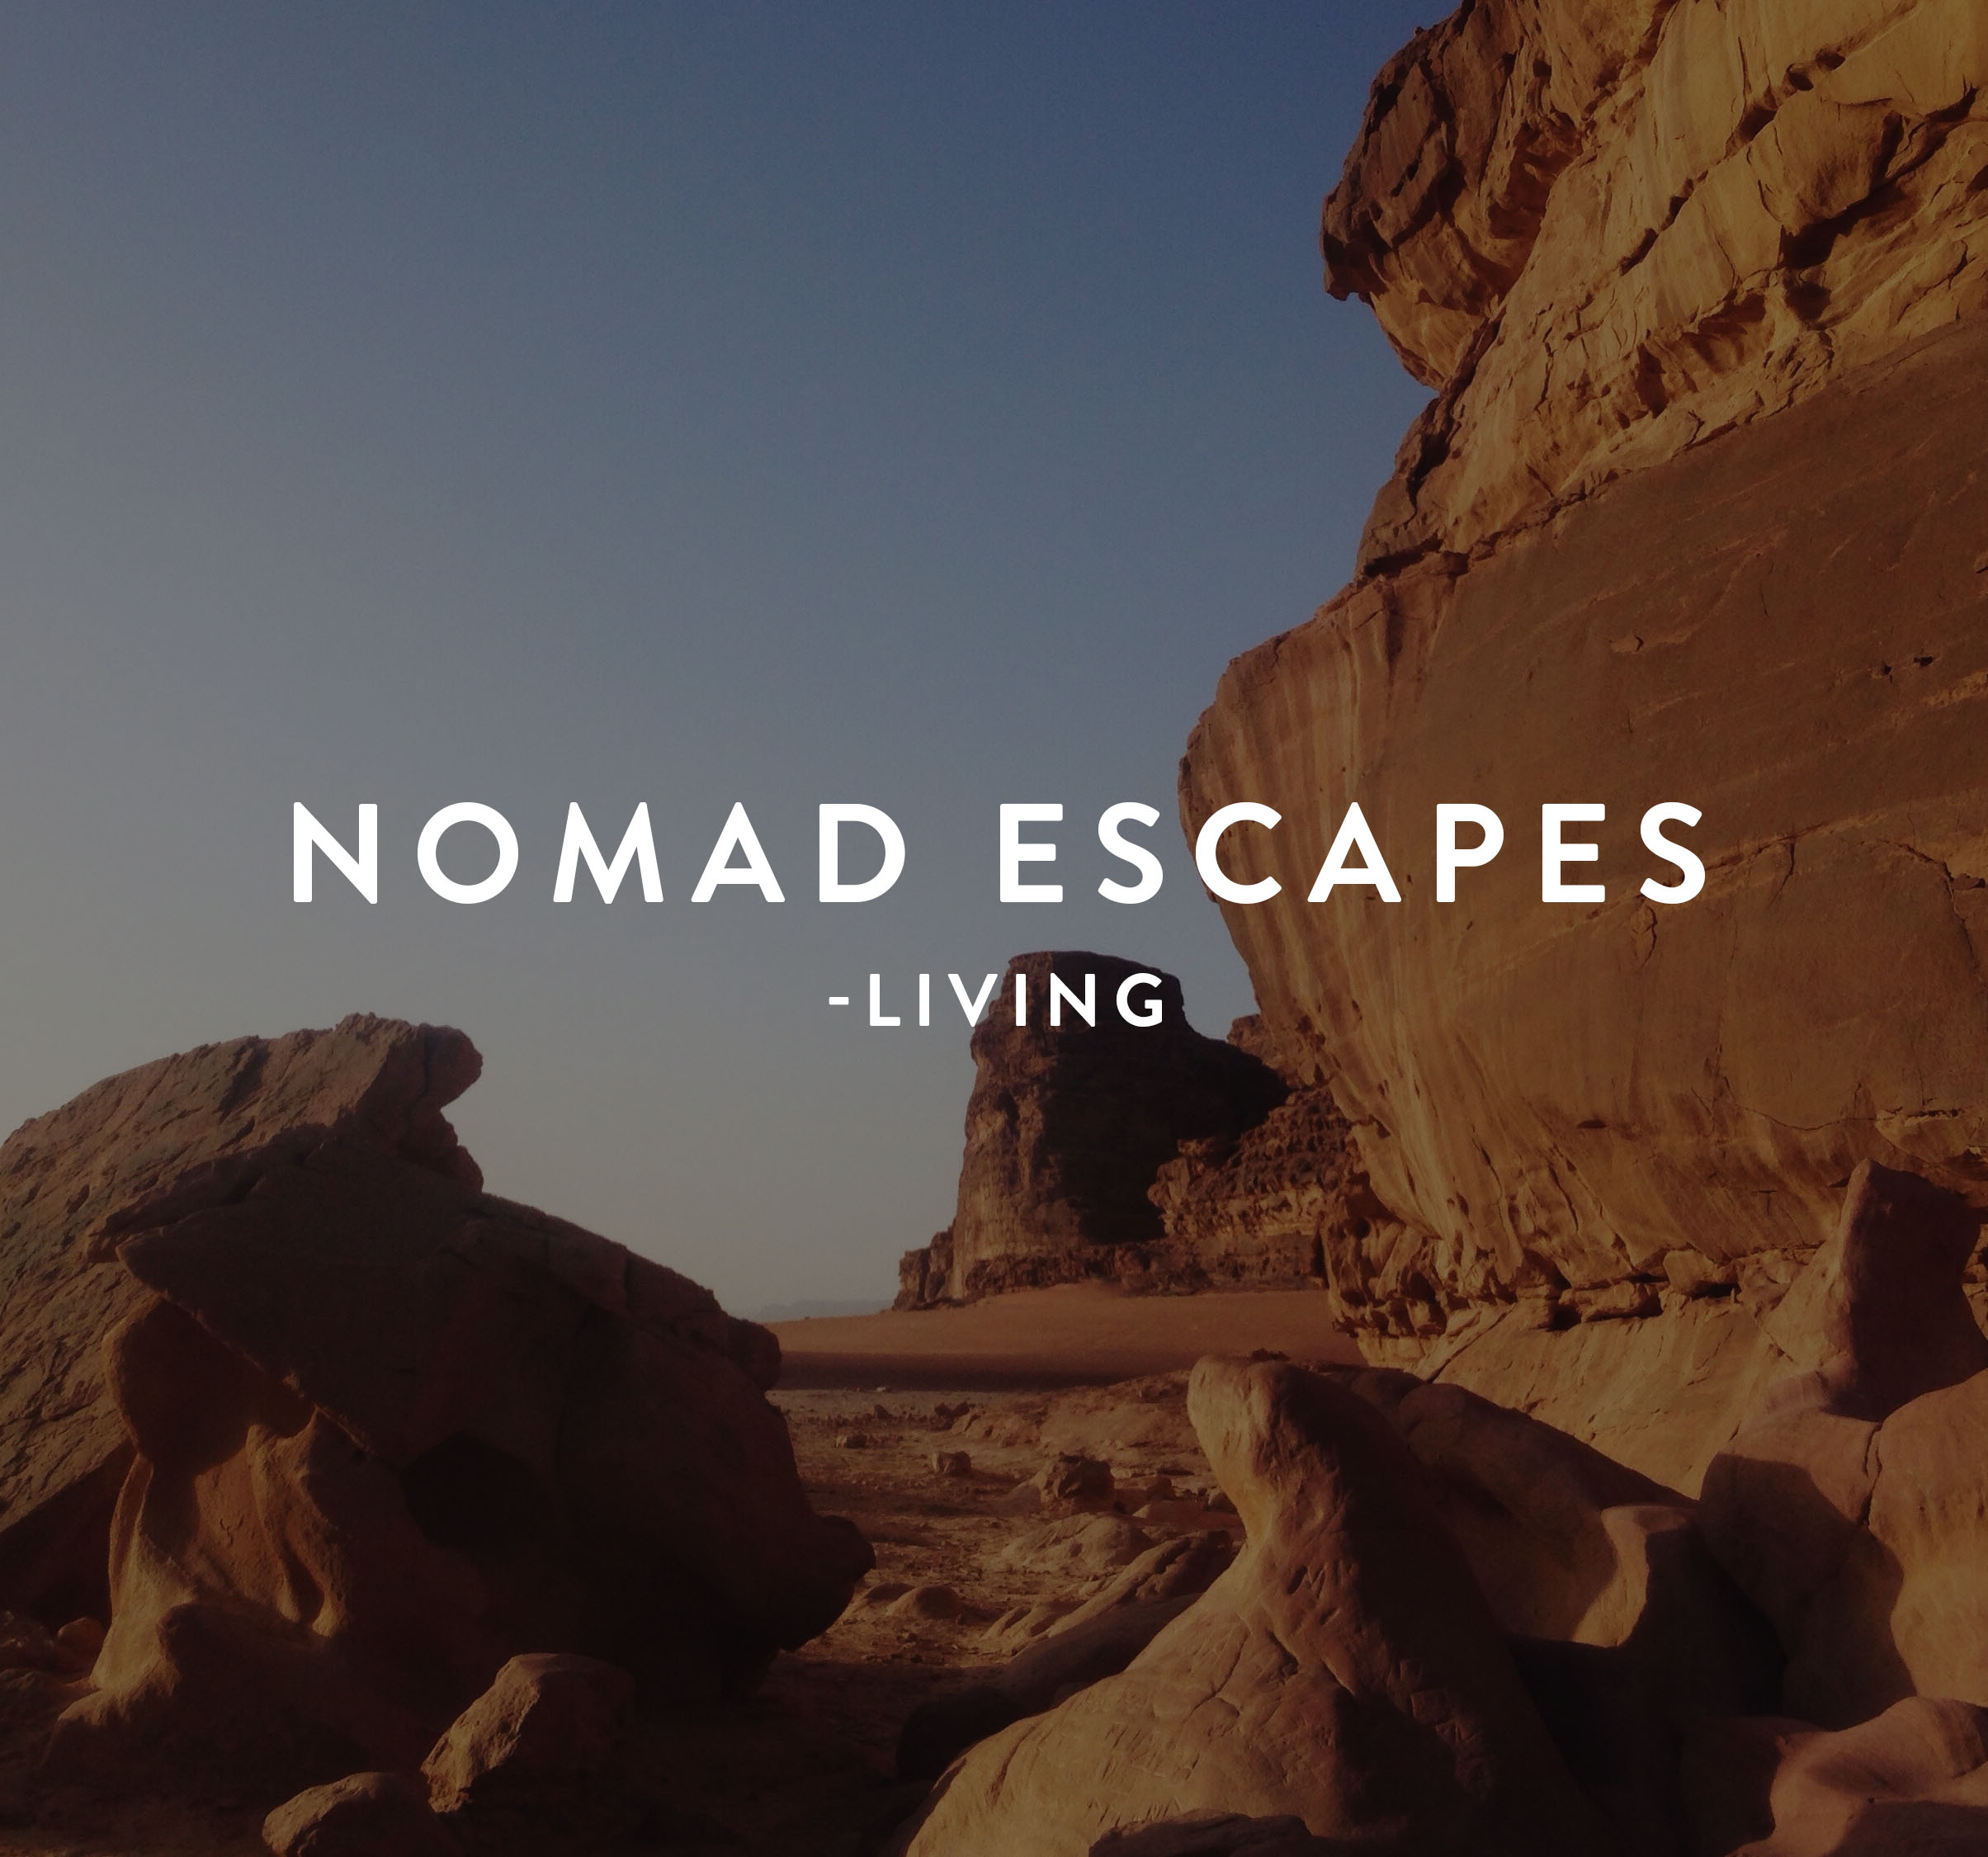 nomad escapes